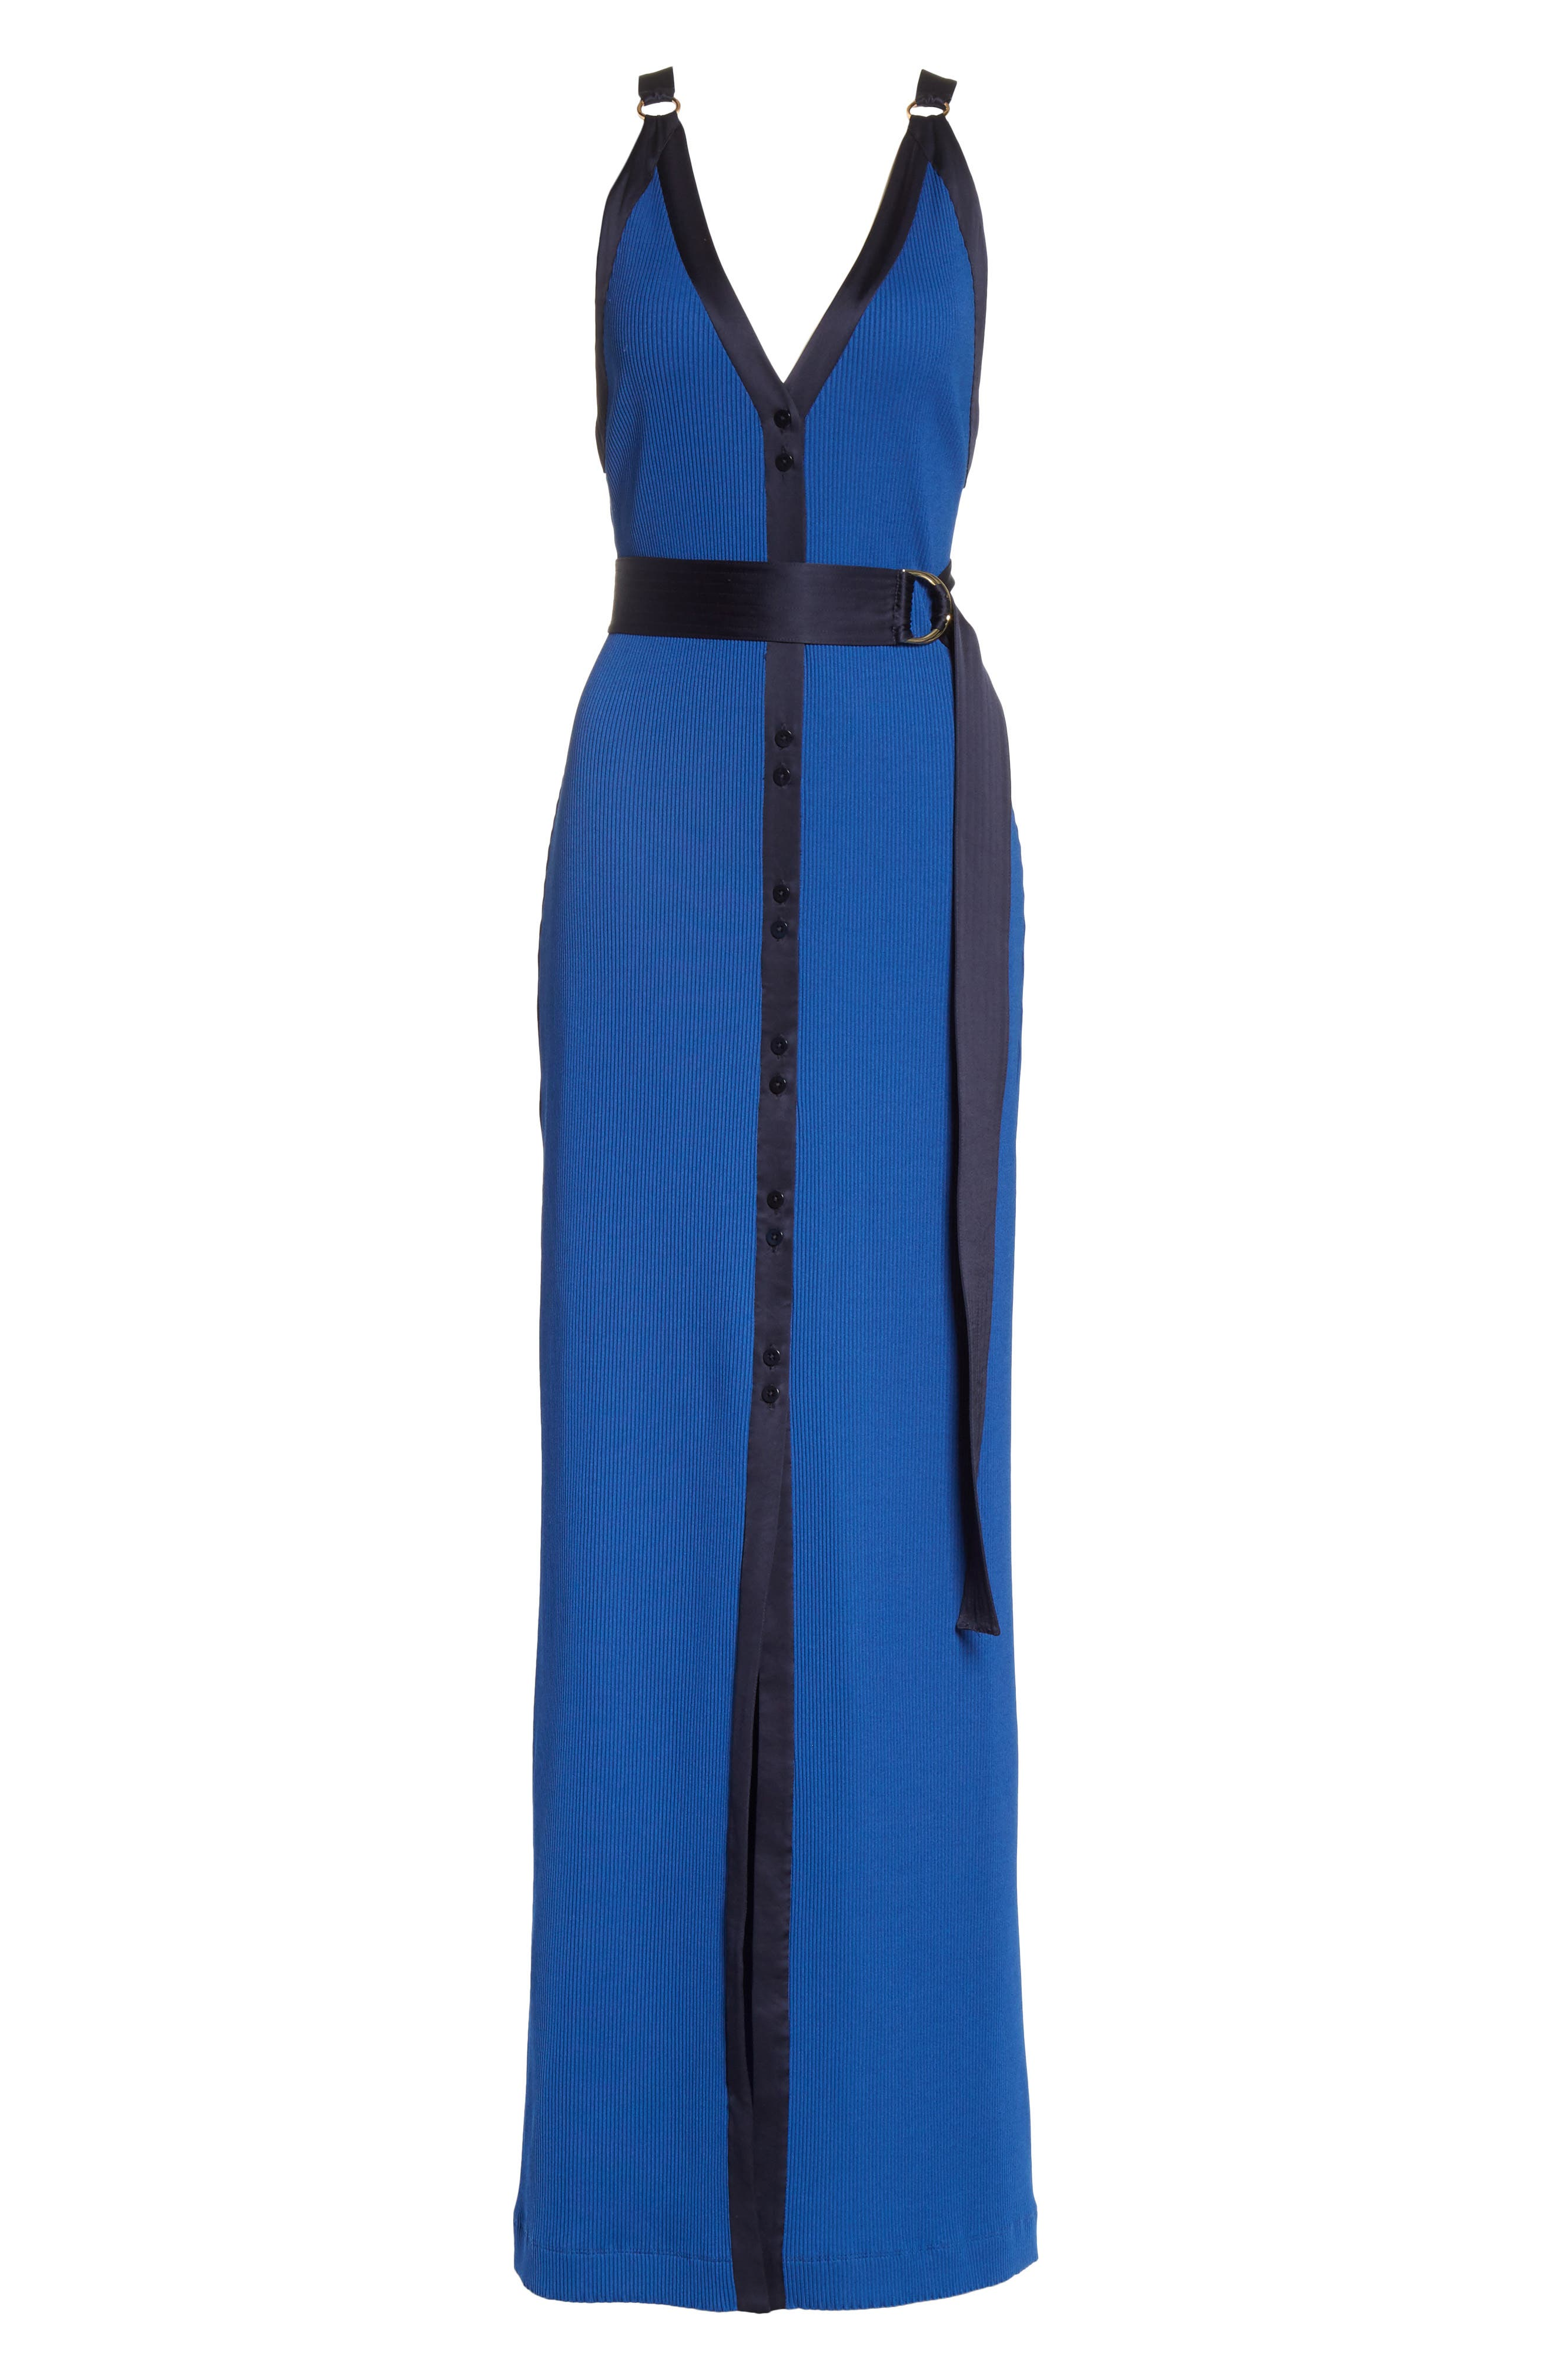 Diane von Furstenberg Ribbed Jersey Maxi Dress,                             Alternate thumbnail 6, color,                             Cove/ Alexander Navy